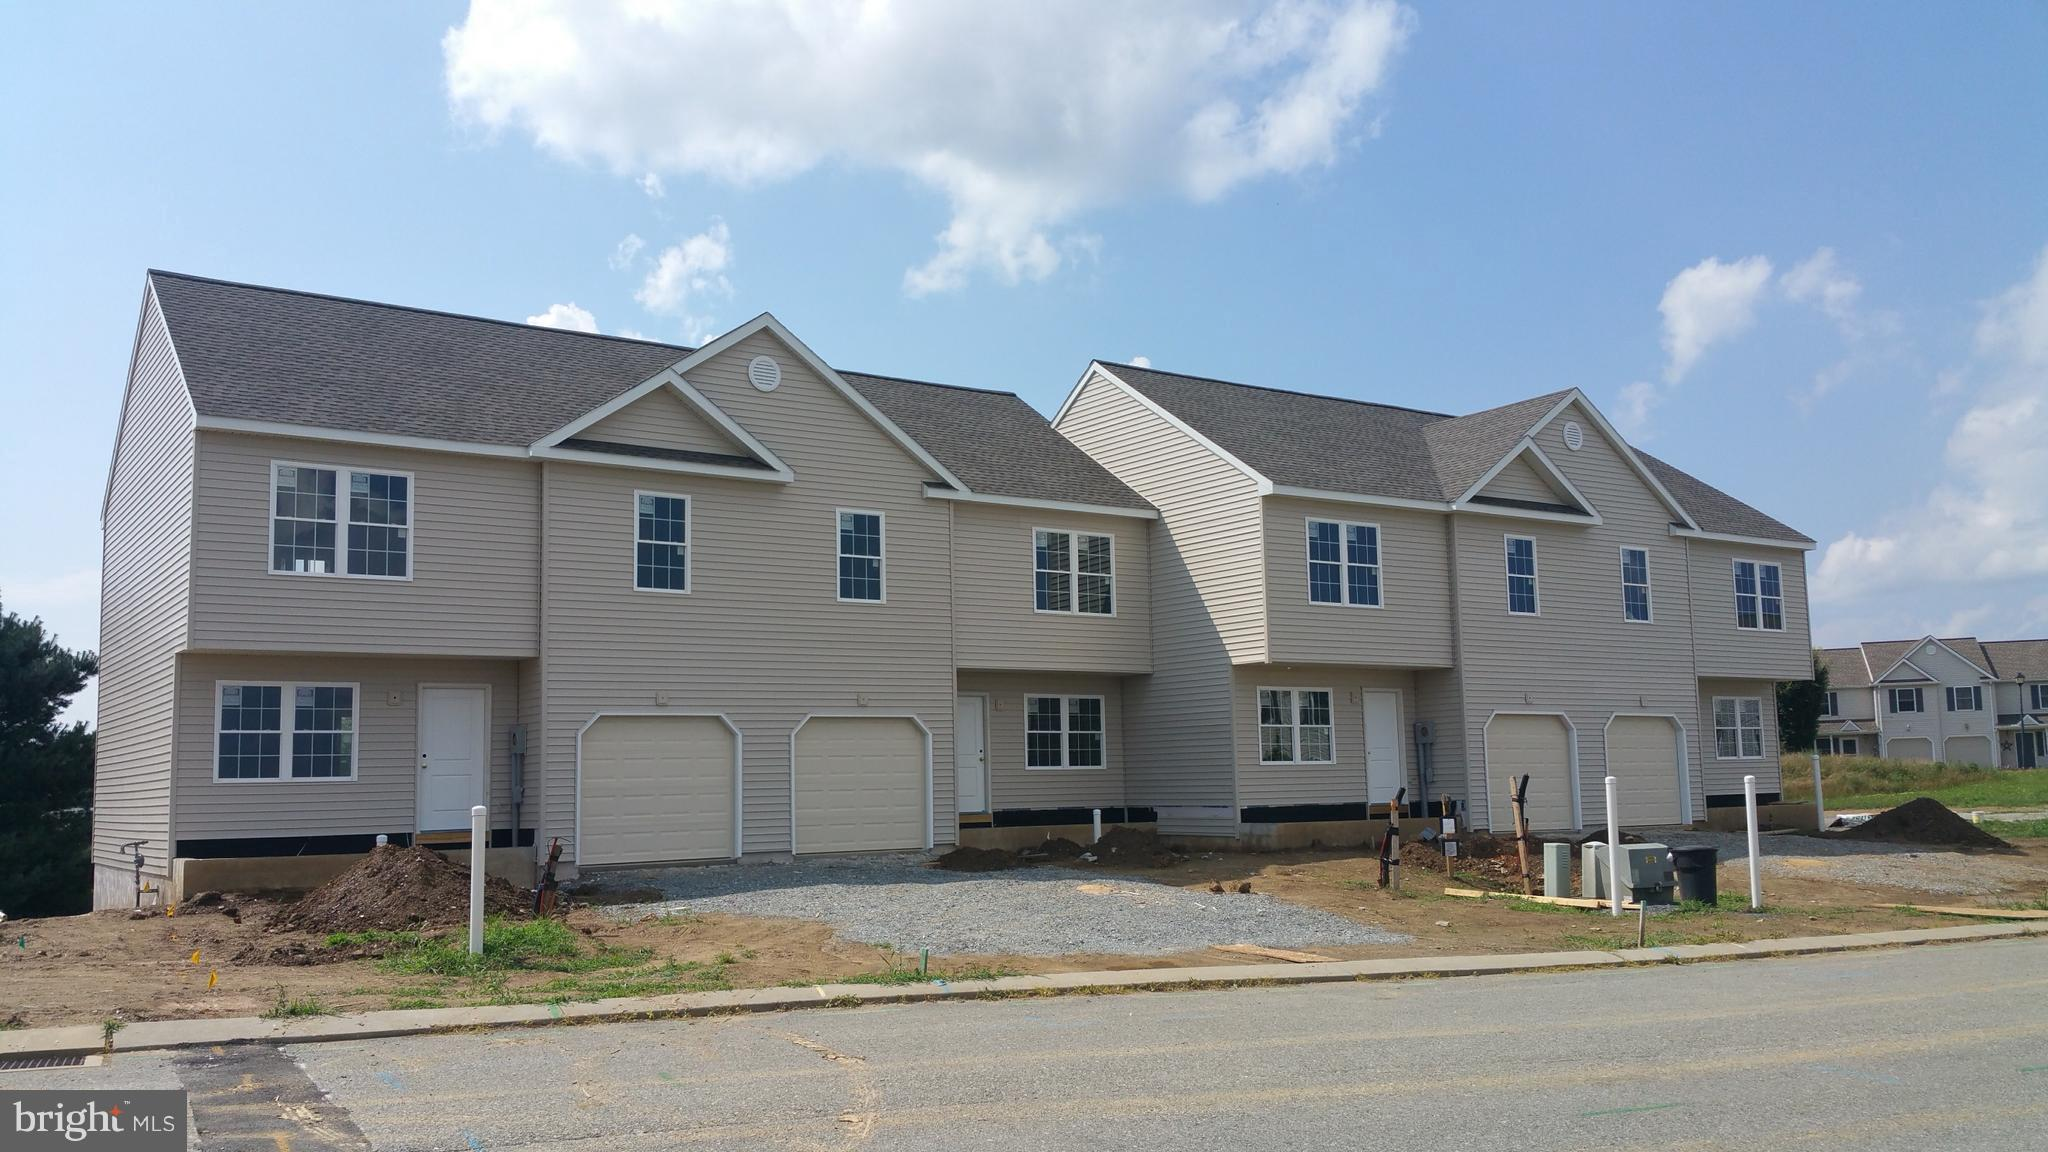 10-16 CREEKSIDE DRIVE, WRIGHTSVILLE, PA 17368